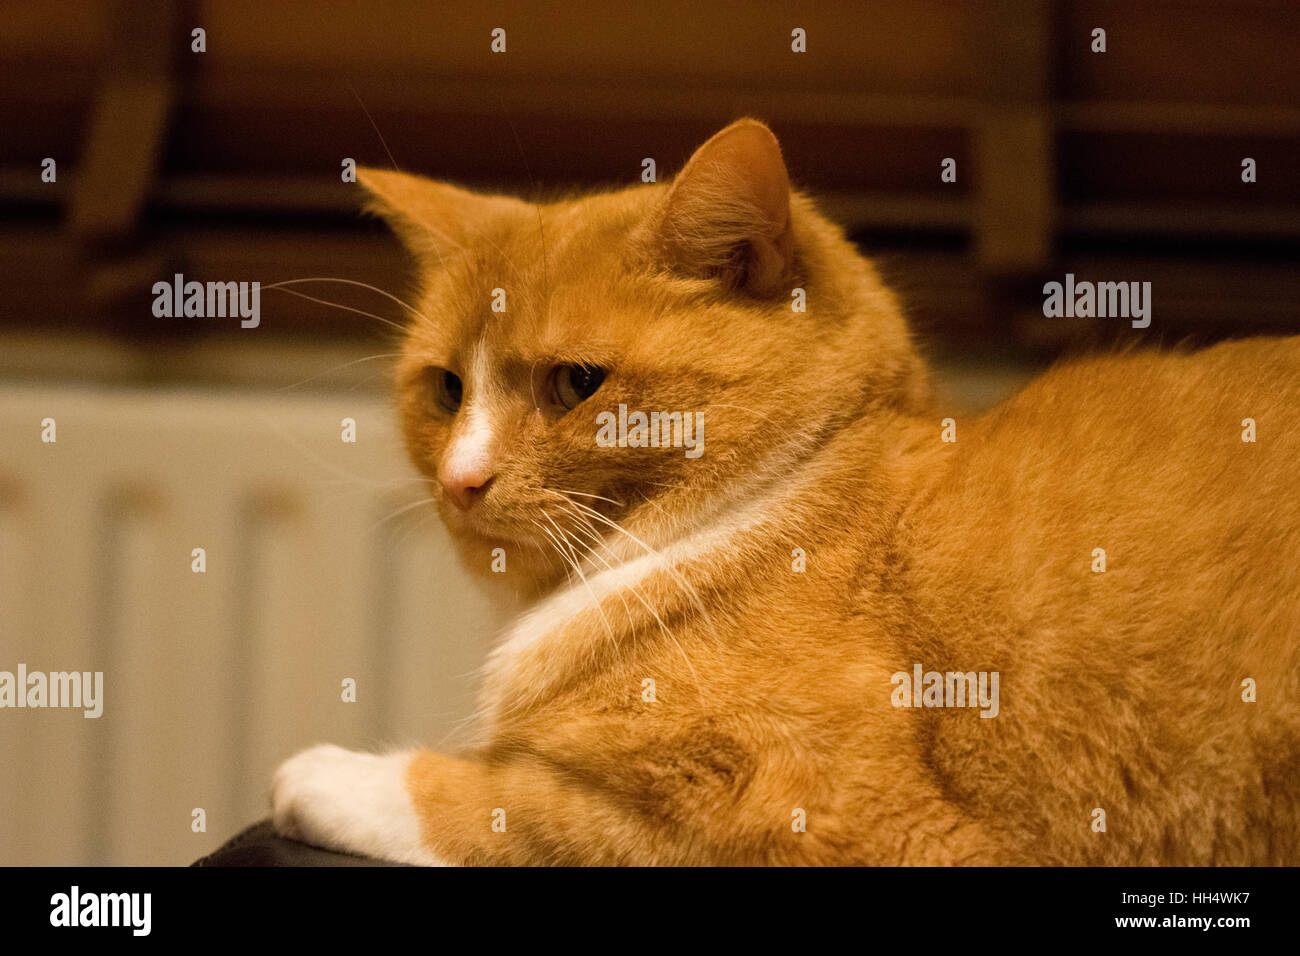 Ginger cat looking annoyed - Stock Image